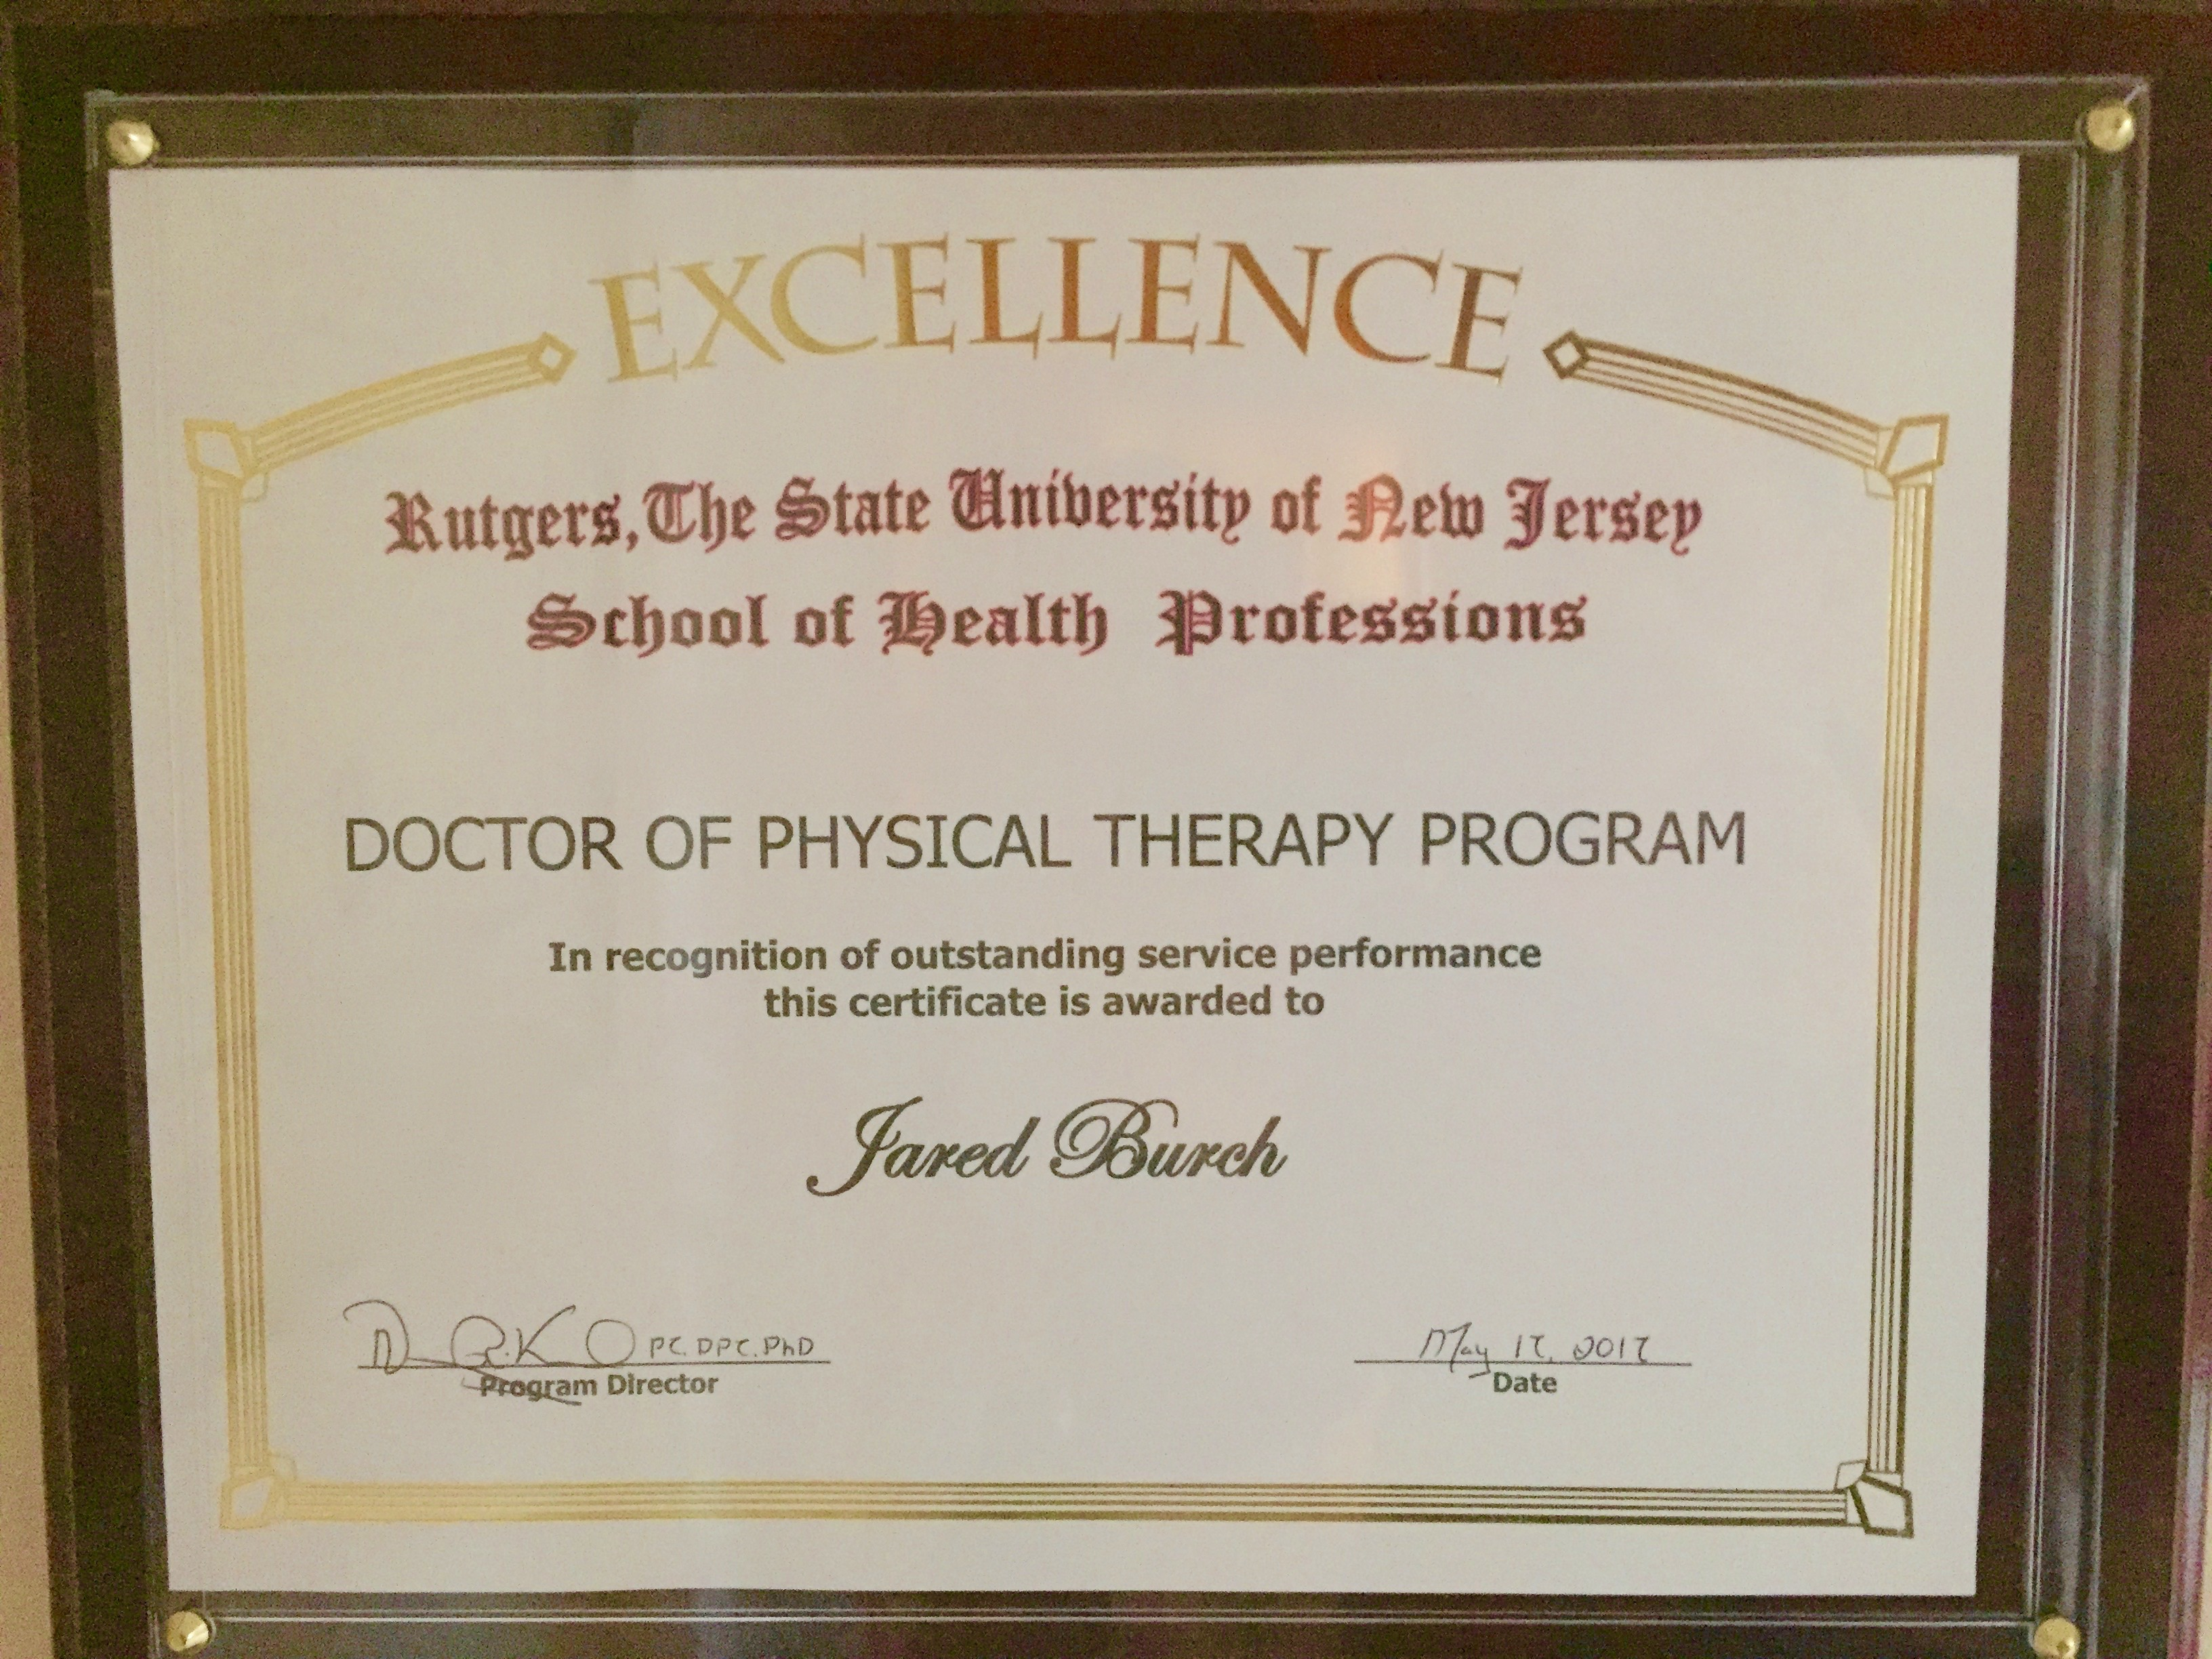 Doctor of physical therapy program - Service